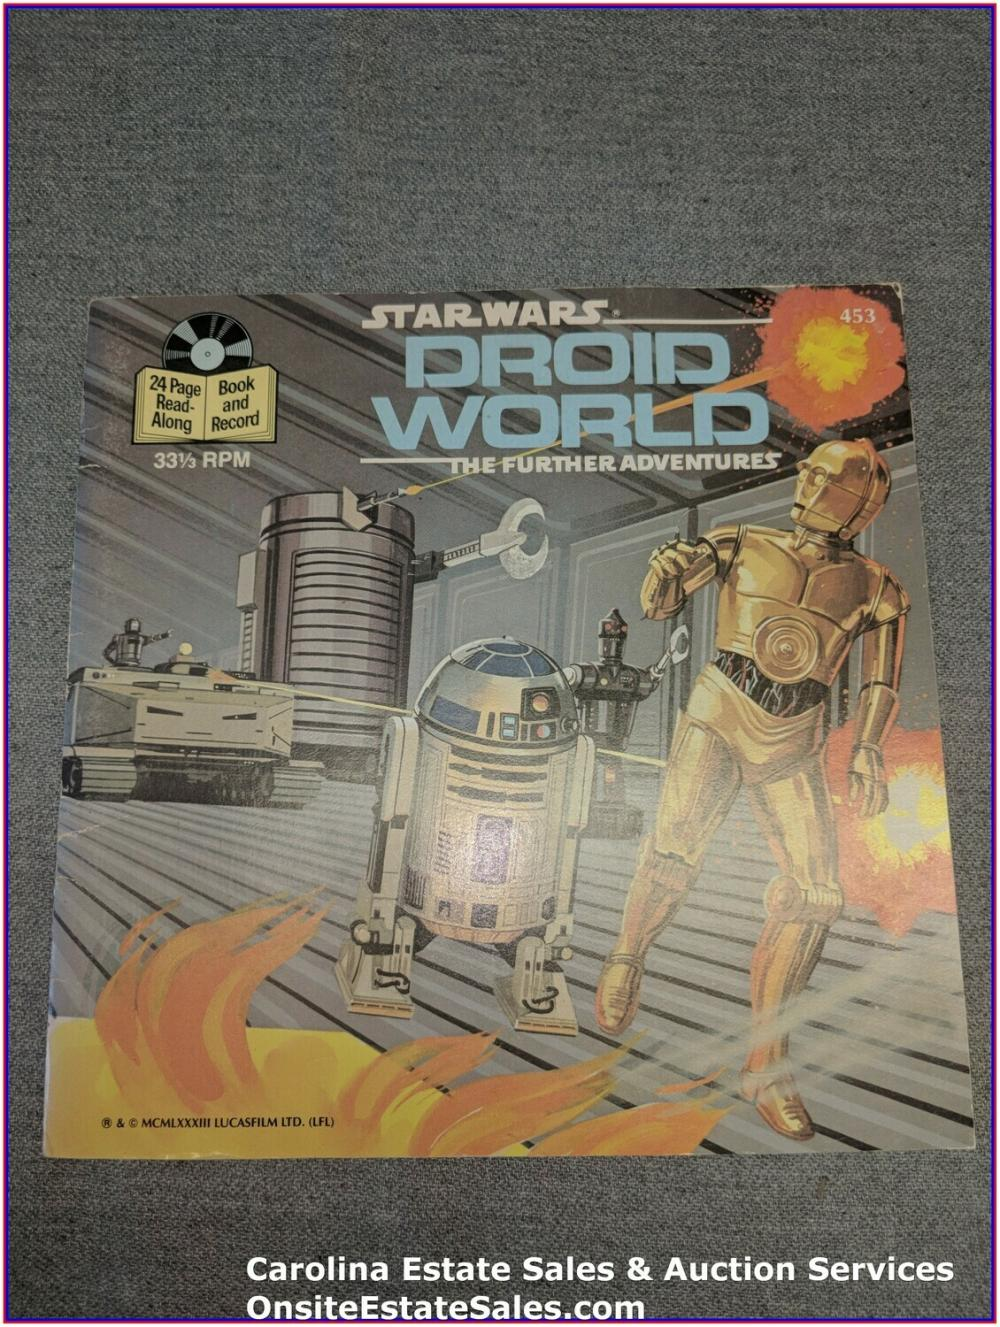 Star Wars Droid World - Disney Book & Record